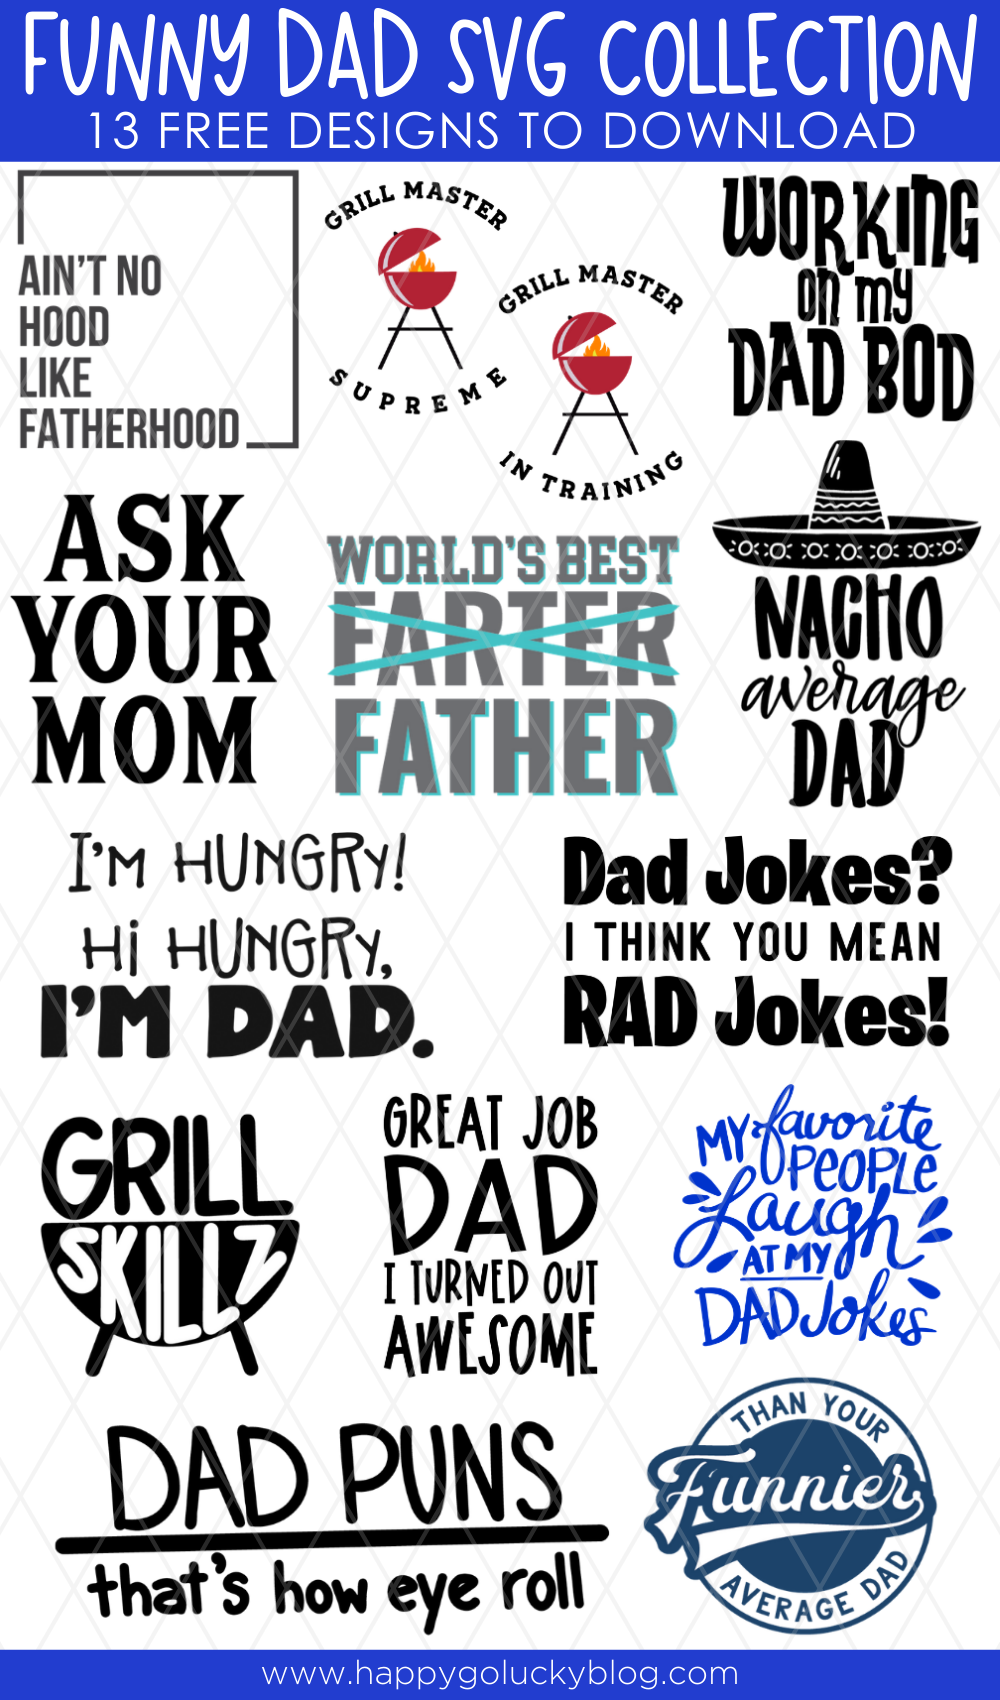 Funny Dad SVG Collection